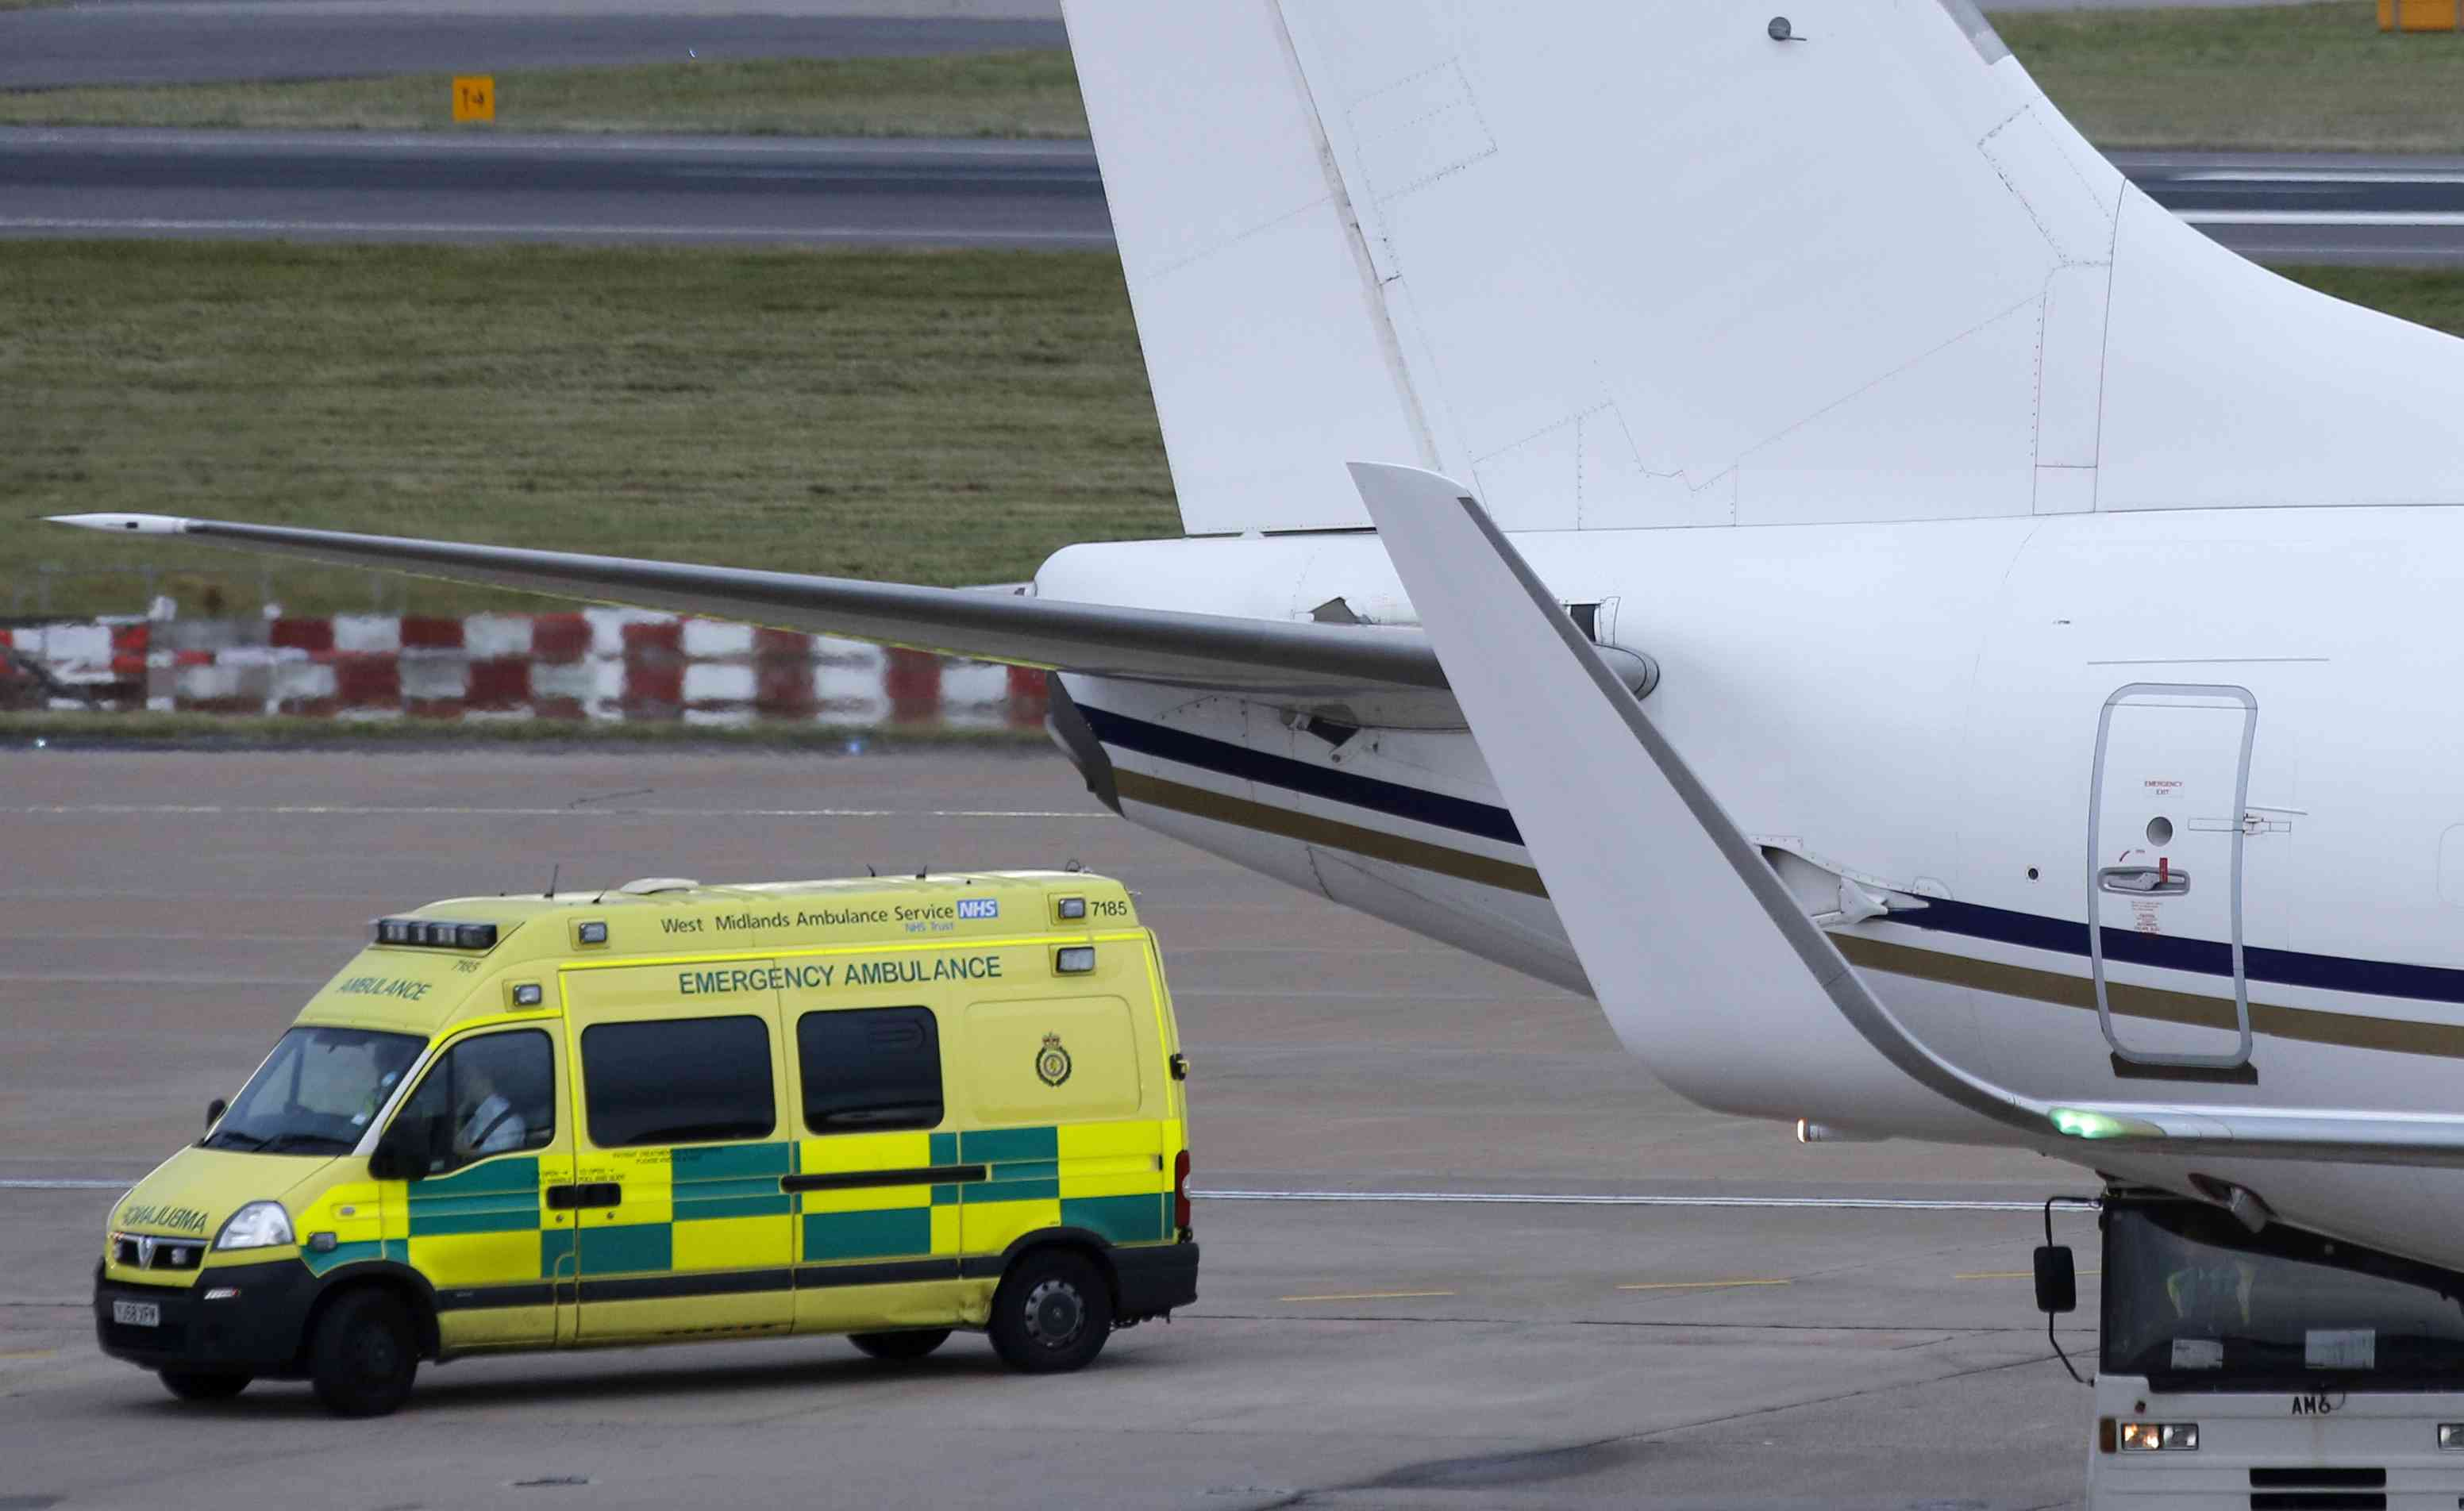 An ambulance carries injured Pakistani teenager Malala Yousufzai from a Emirati medical transport aircraft at Birmingham International airport in central England October 15, 2012 | Photo credit: Chris Helgren / Reuters